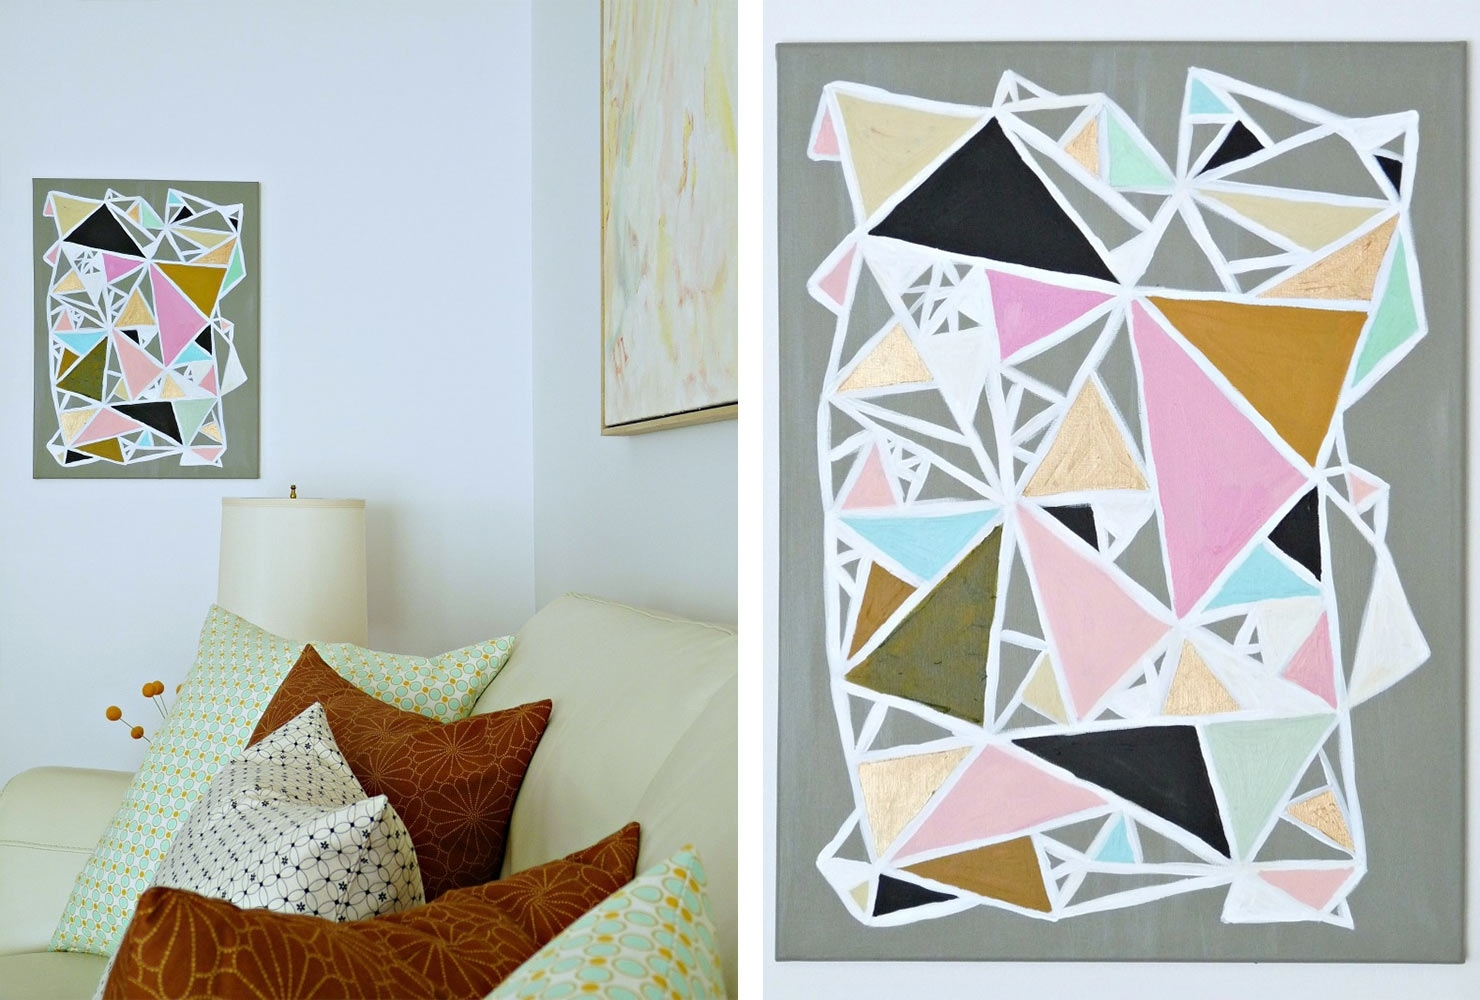 25 Unique Diy Wall Art Ideas (With Printables) | Shutterfly With Regard To Most Recent Diy Wall Art (View 3 of 15)